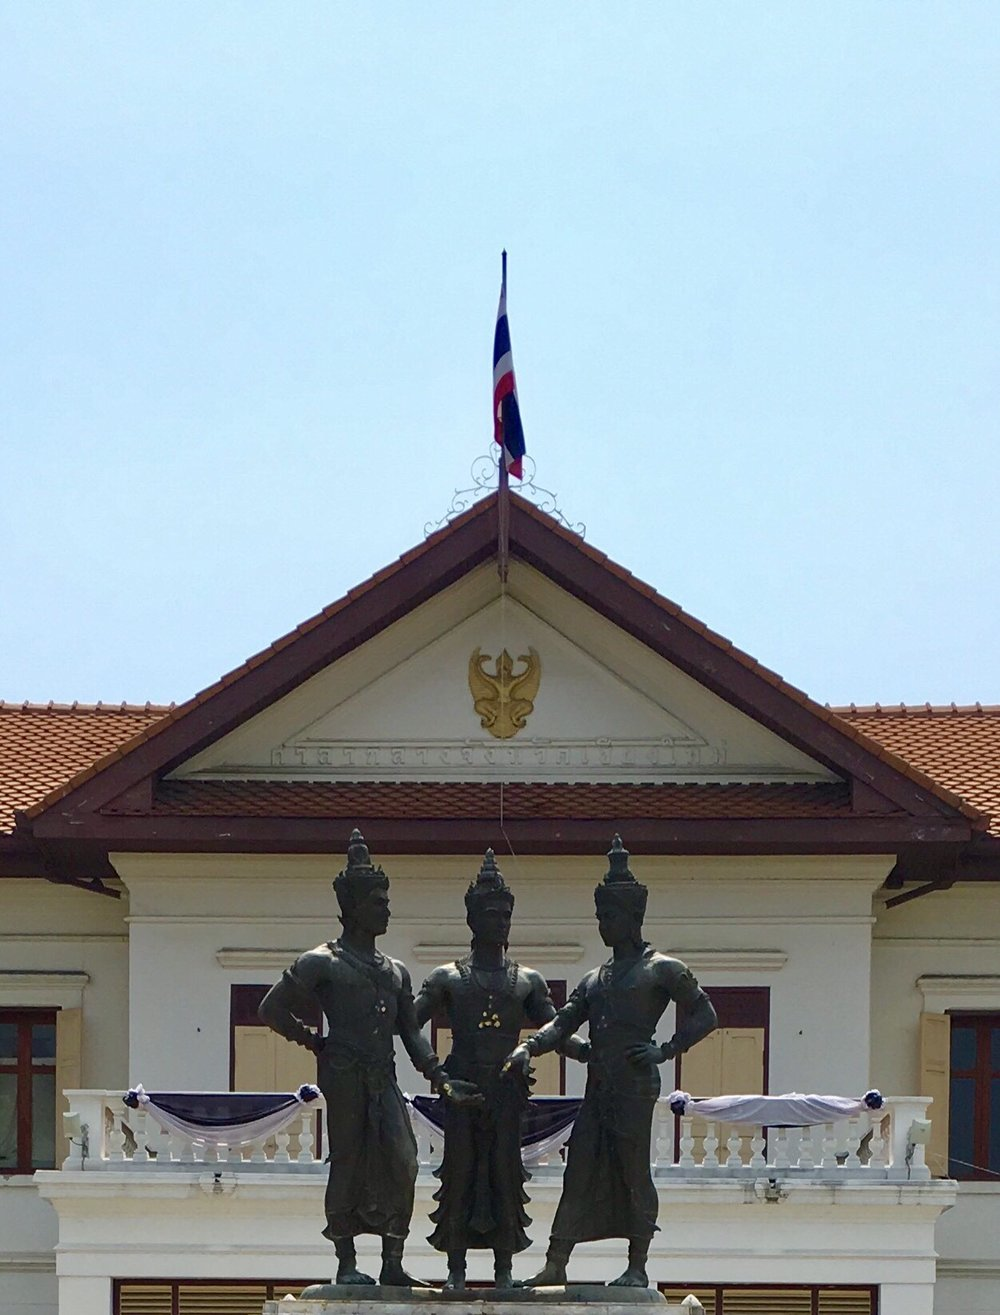 The Three Kings Monument in Chiang Mai — that's Mengrai in the middle